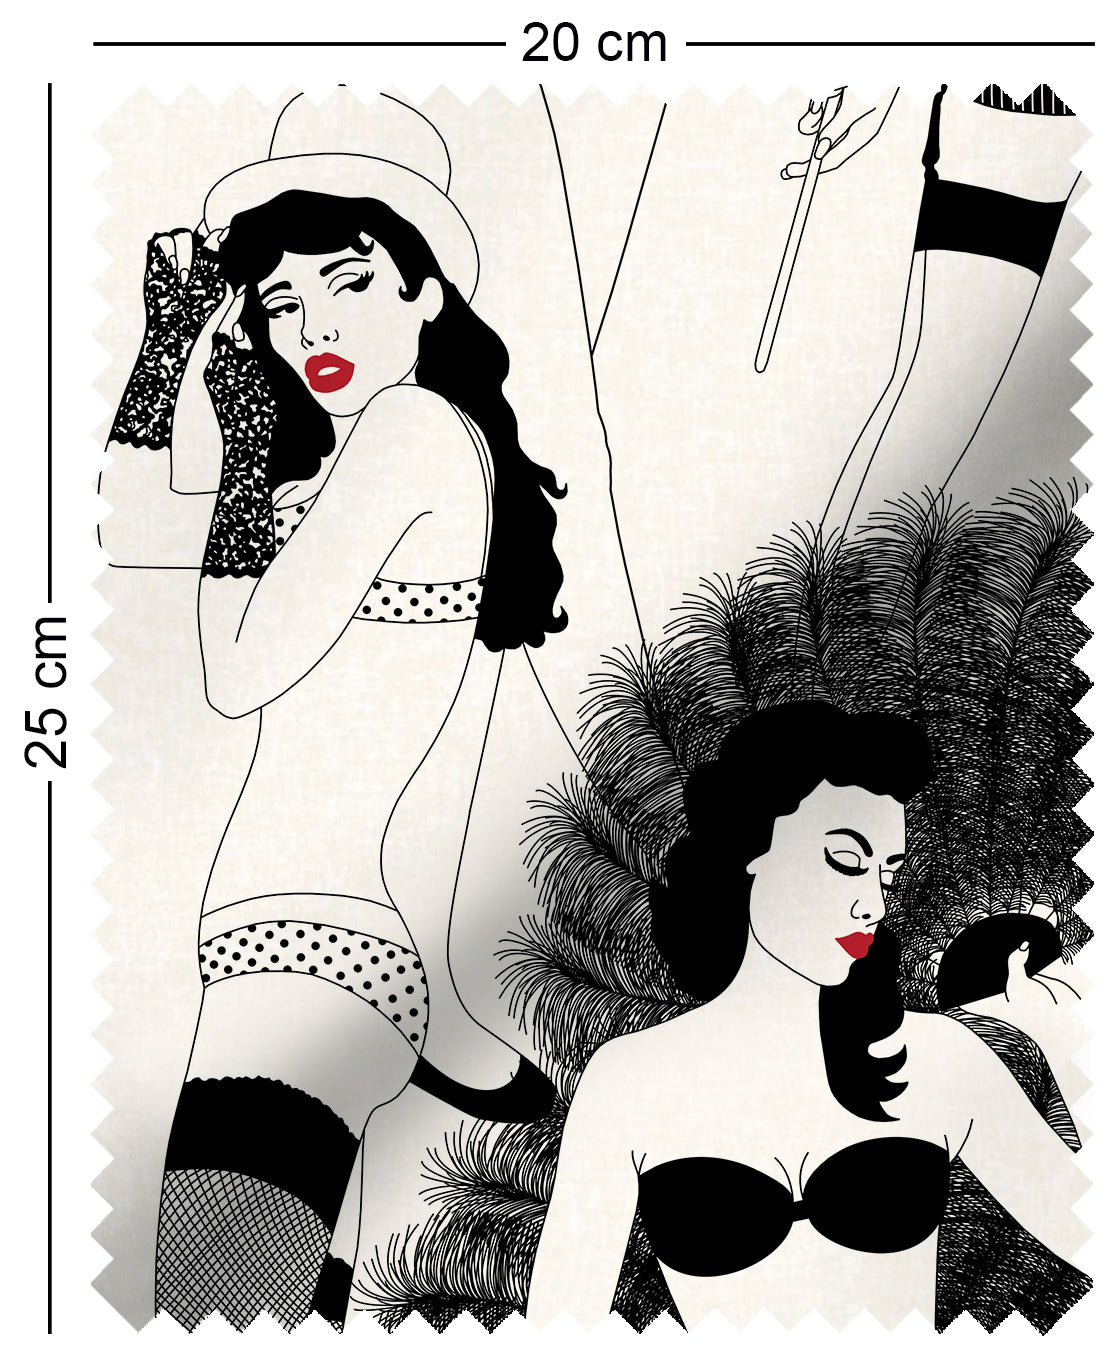 fabric swatch with cabaret burlesque dancer design in monochrome with red lips playboy femlin